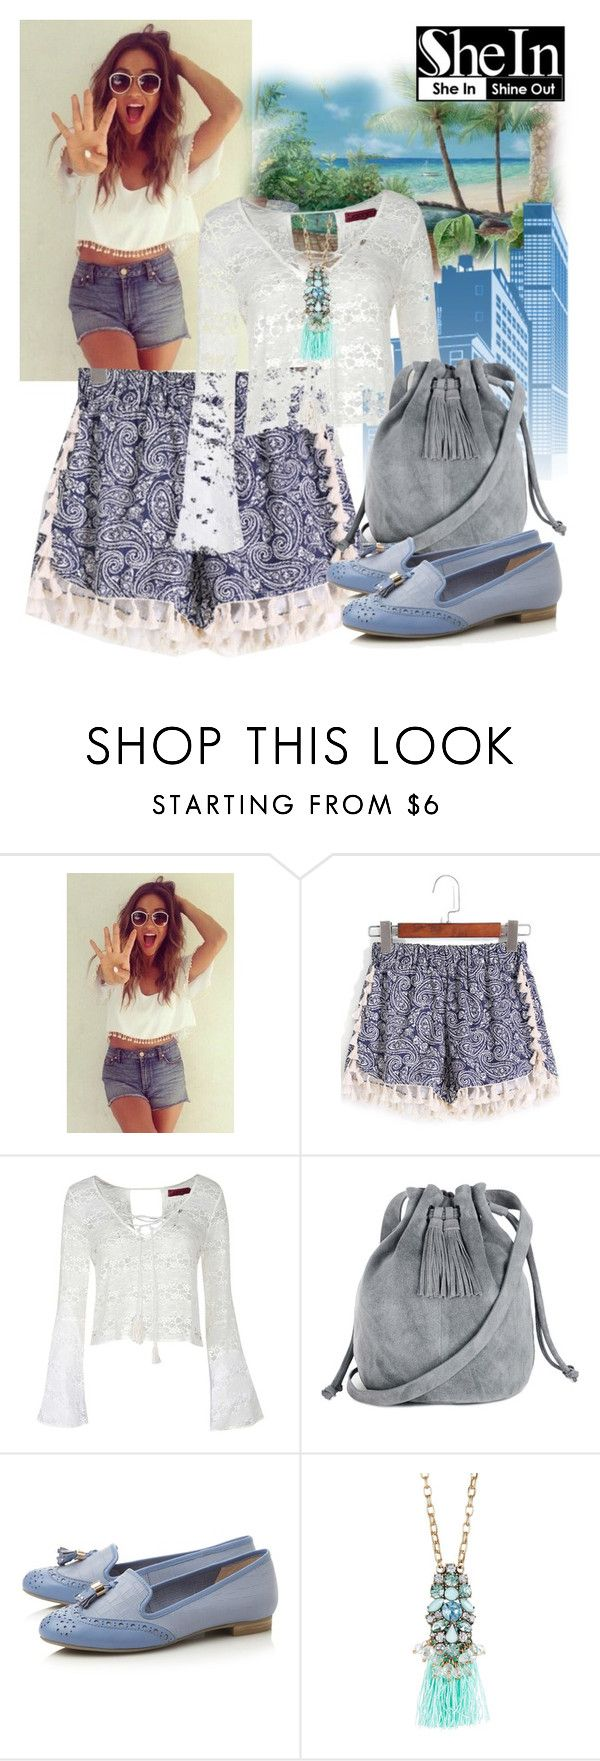 """Shein shorts"" by irinavsl ❤ liked on Polyvore featuring WithChic, Boohoo, Warehouse and Olivia Welles"